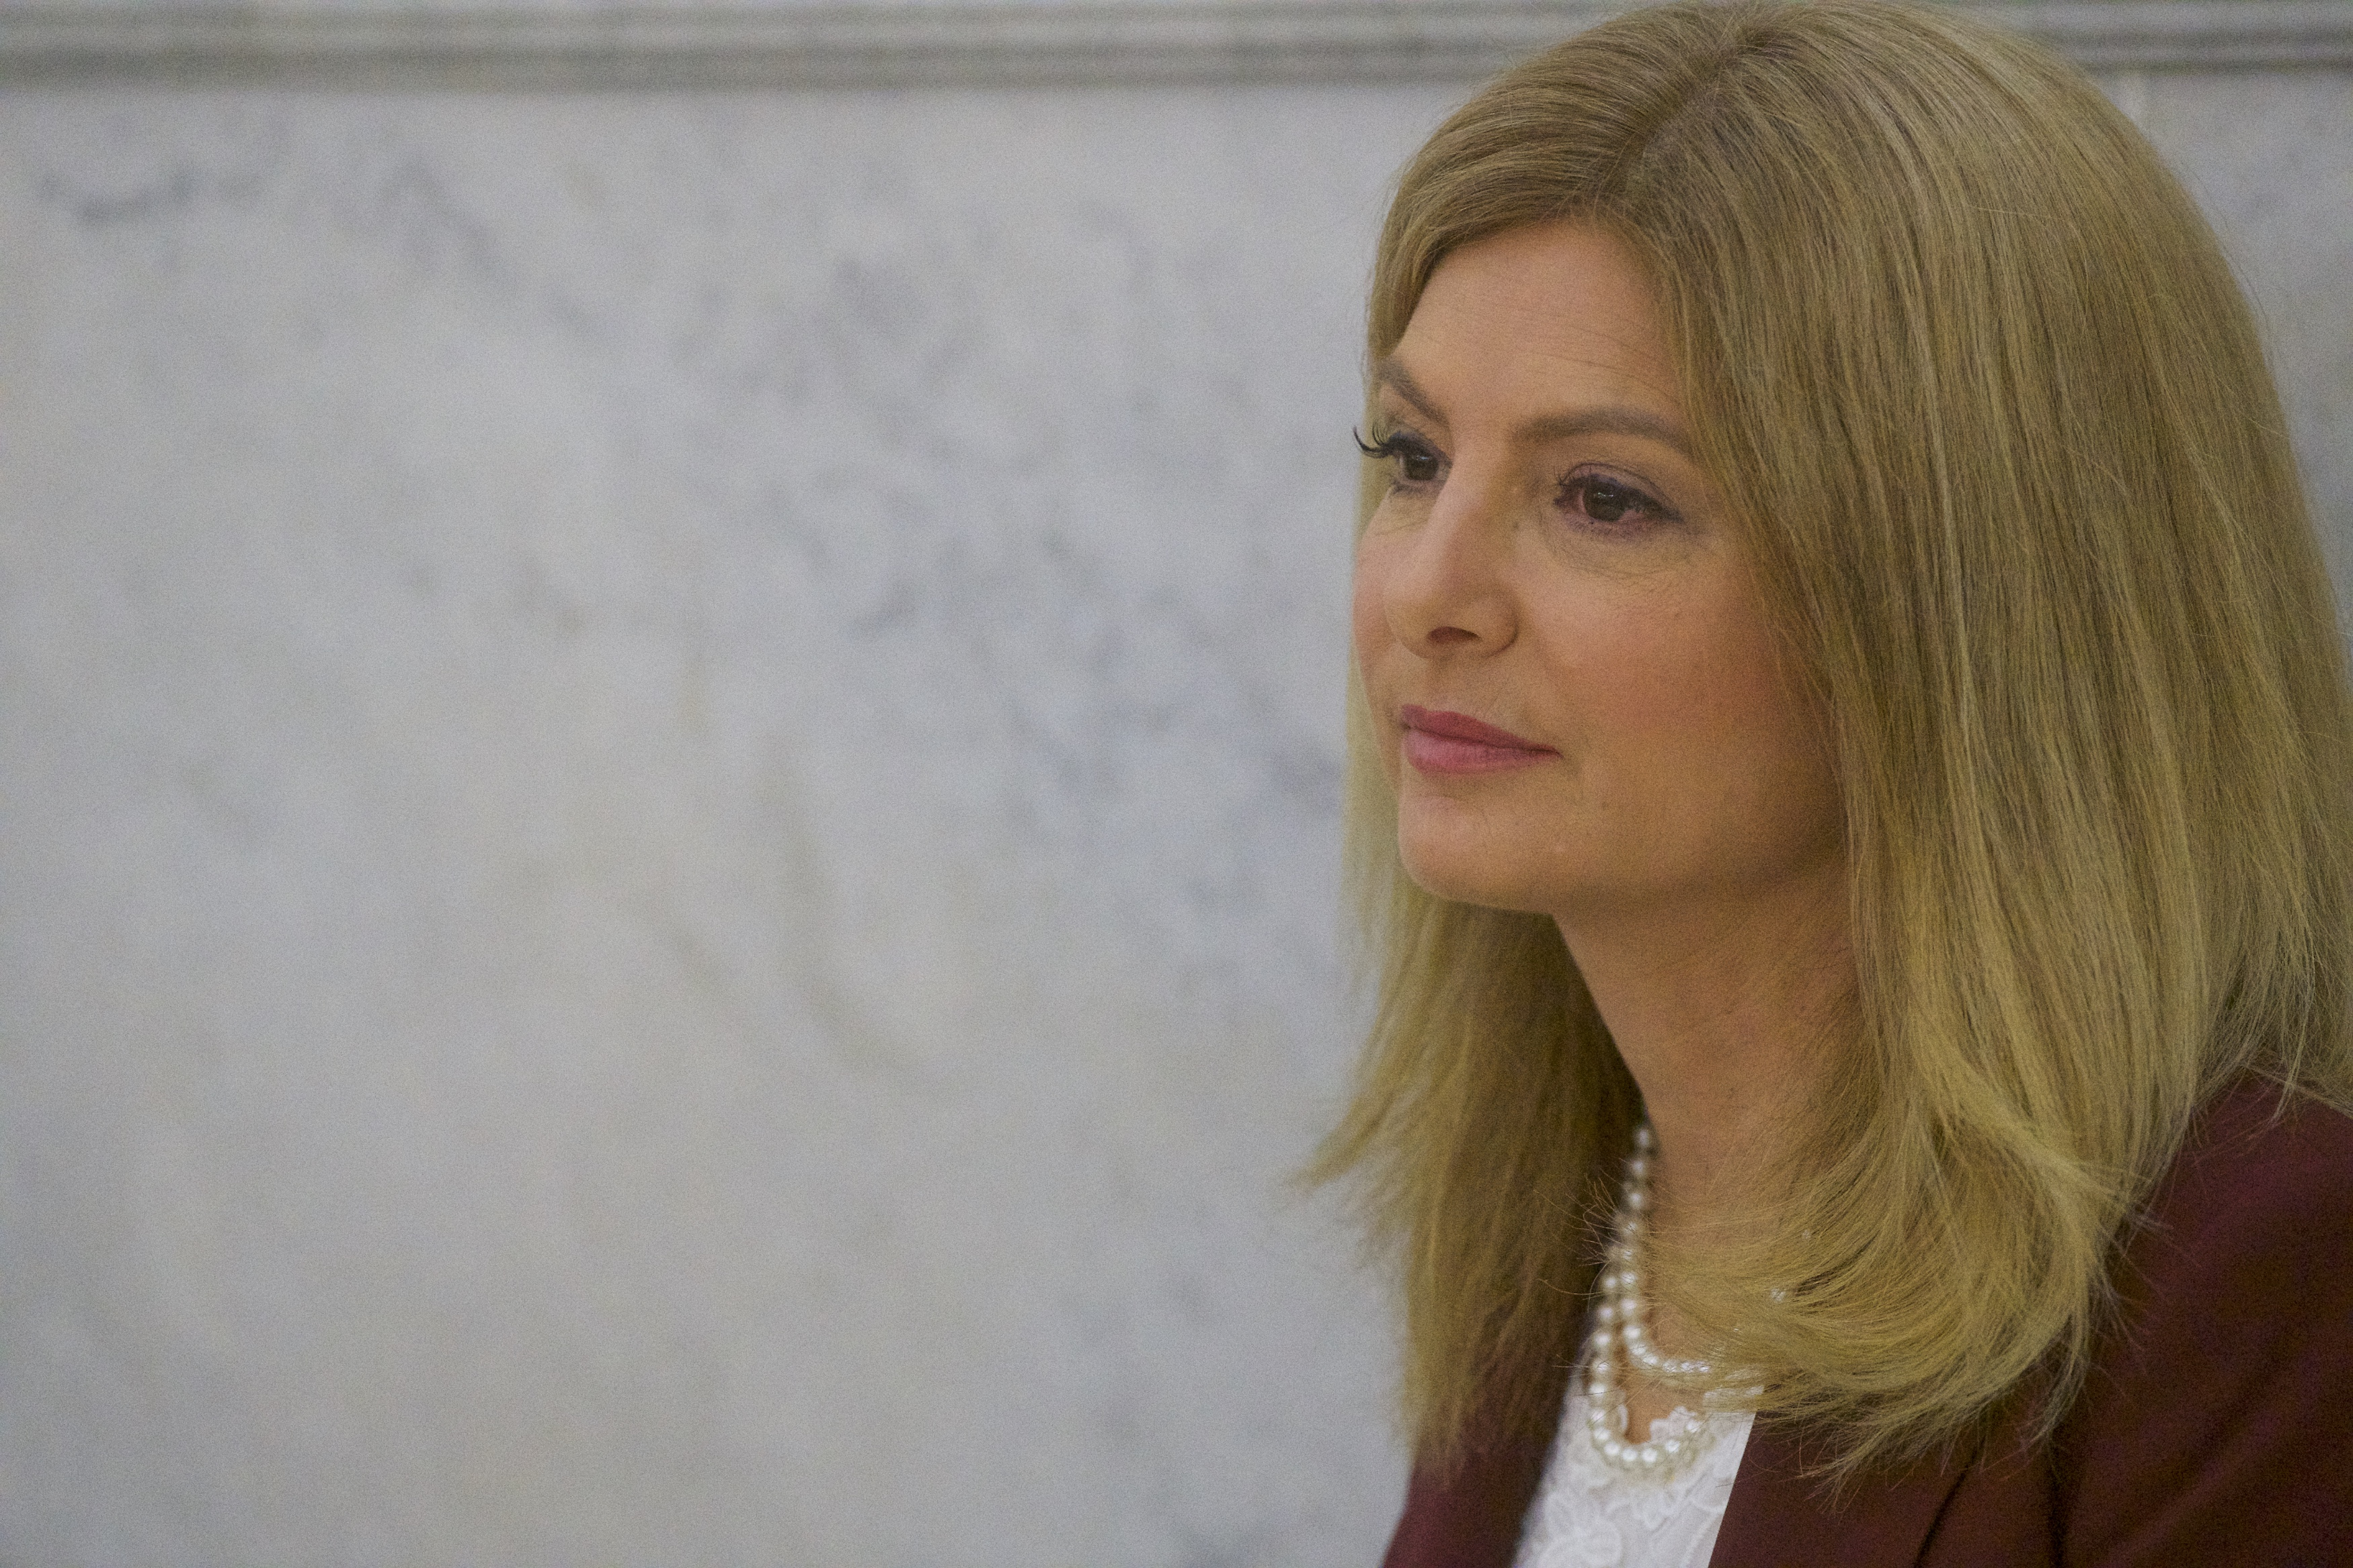 How Lisa Bloom, feminist attorney, became just another complicit Aunt Lydia - The Washington Post